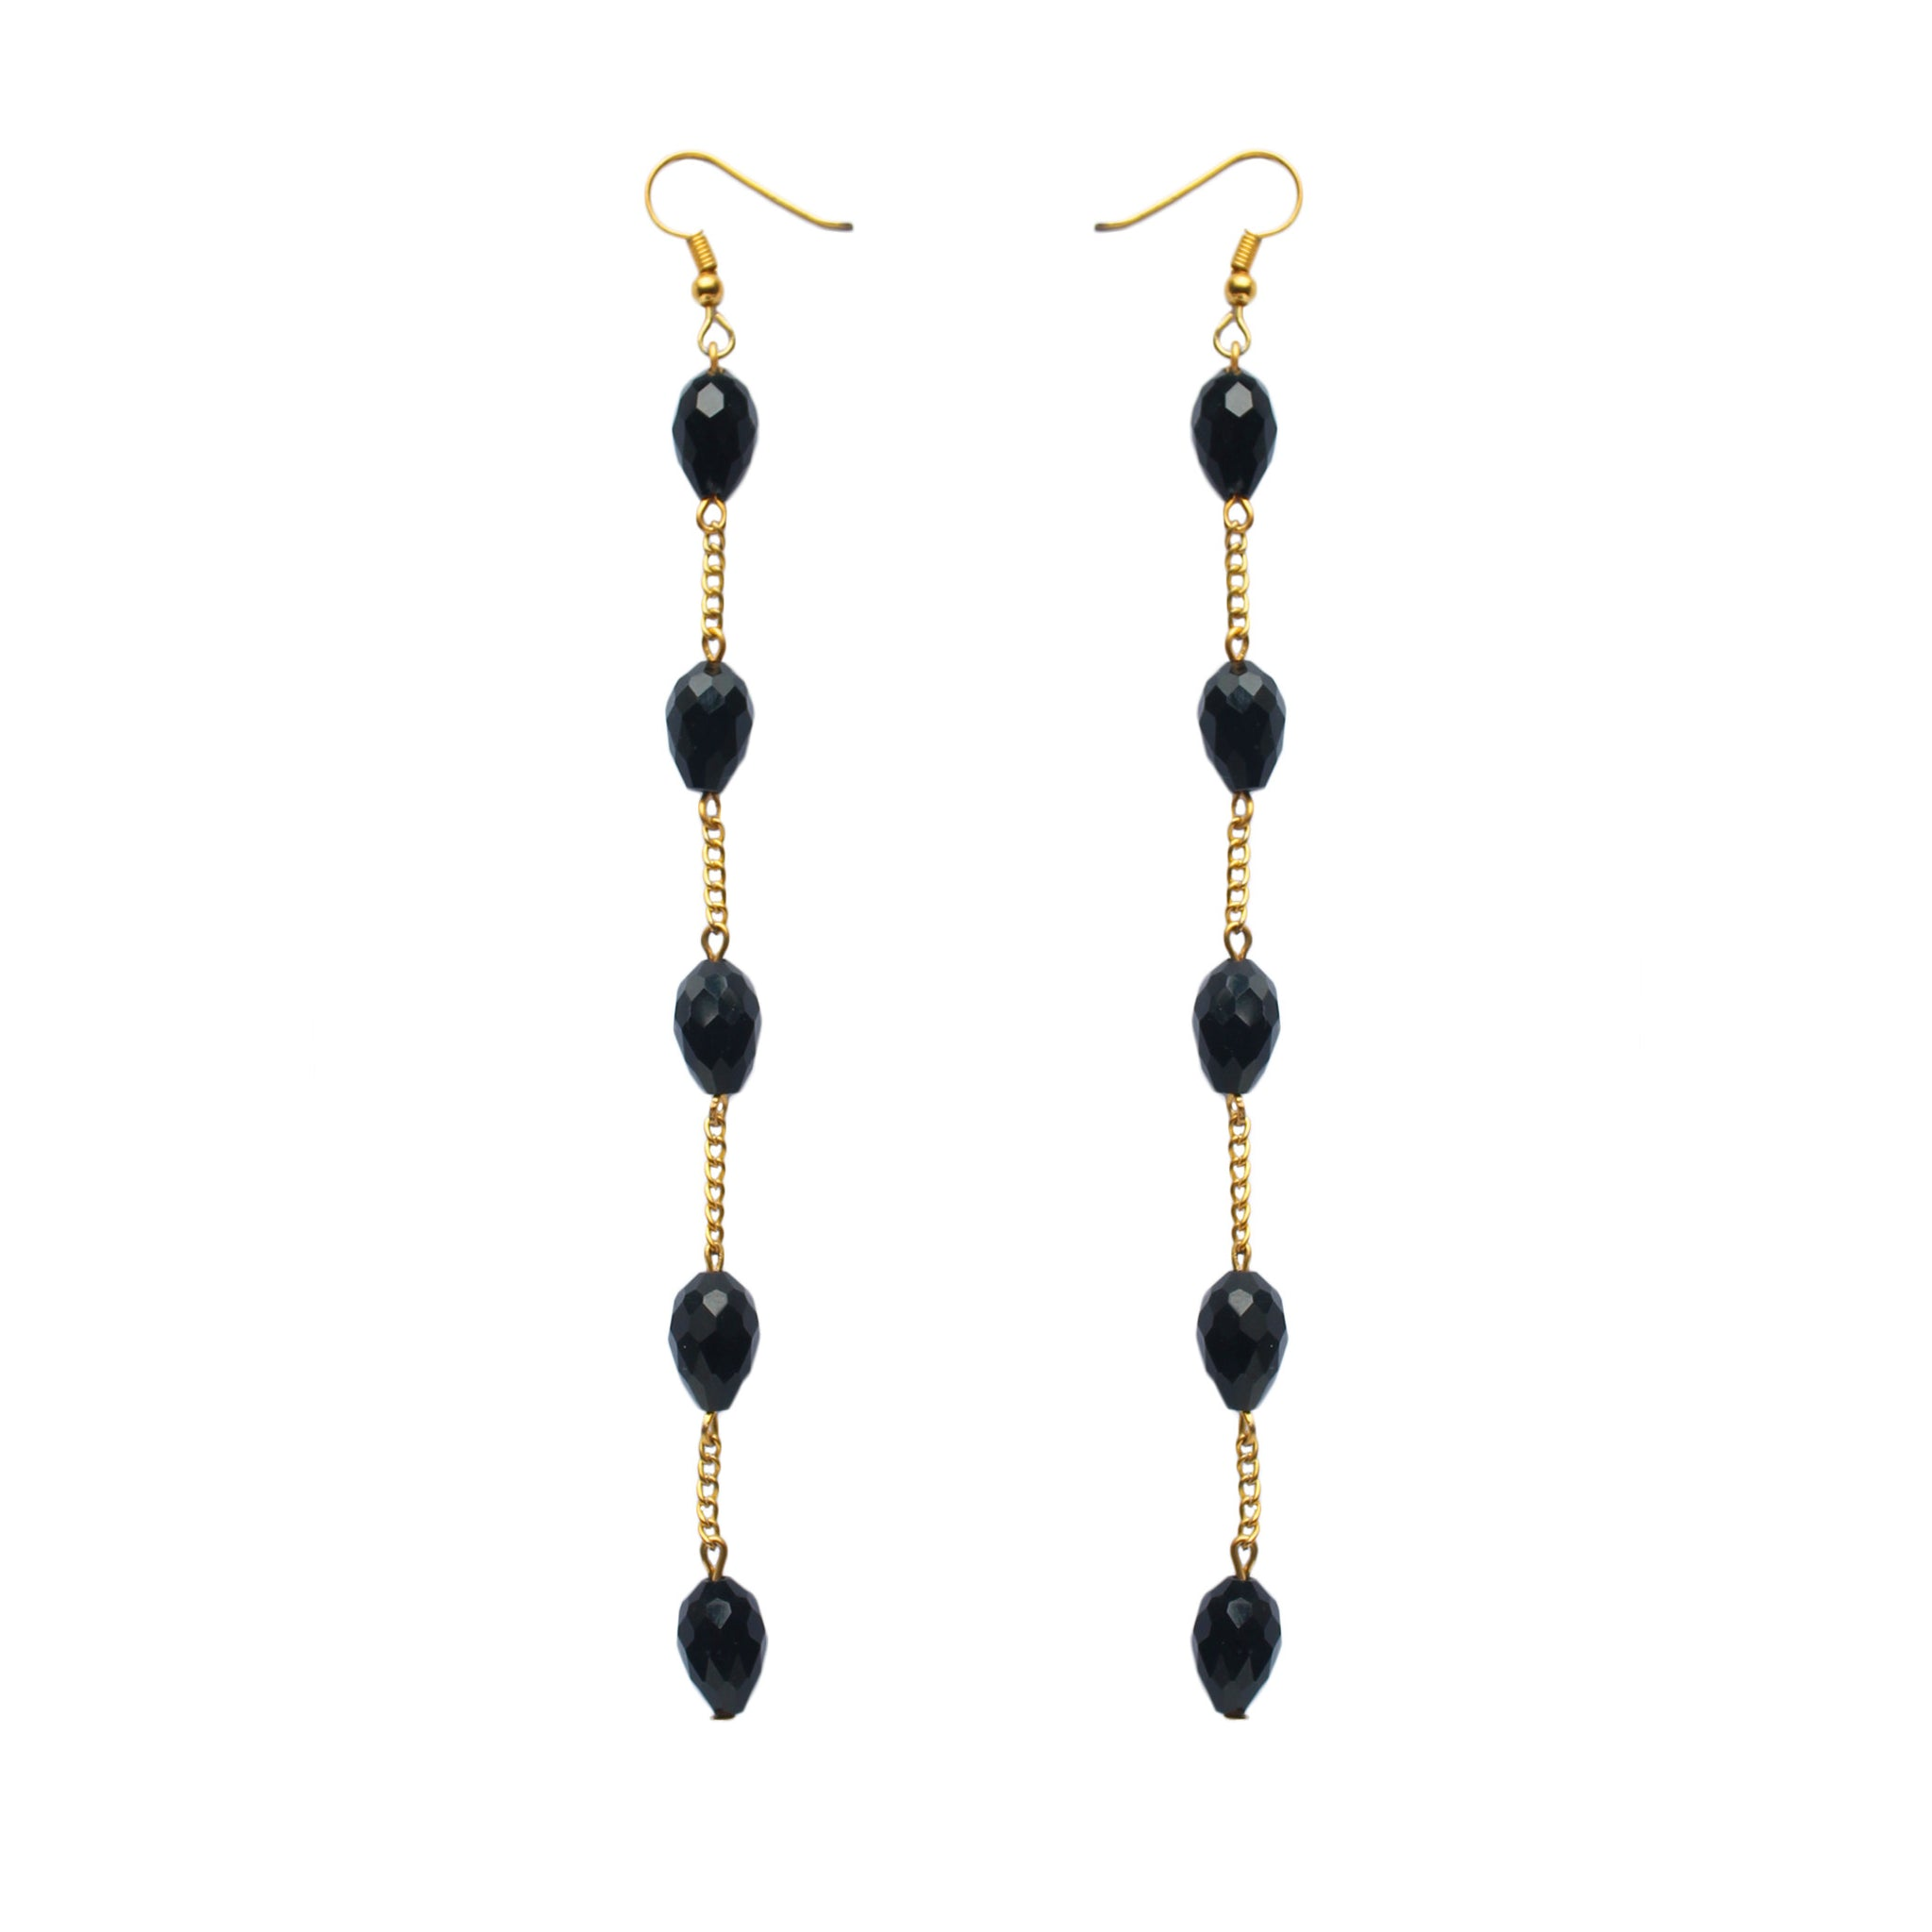 Gigi 5 Drop Earrings